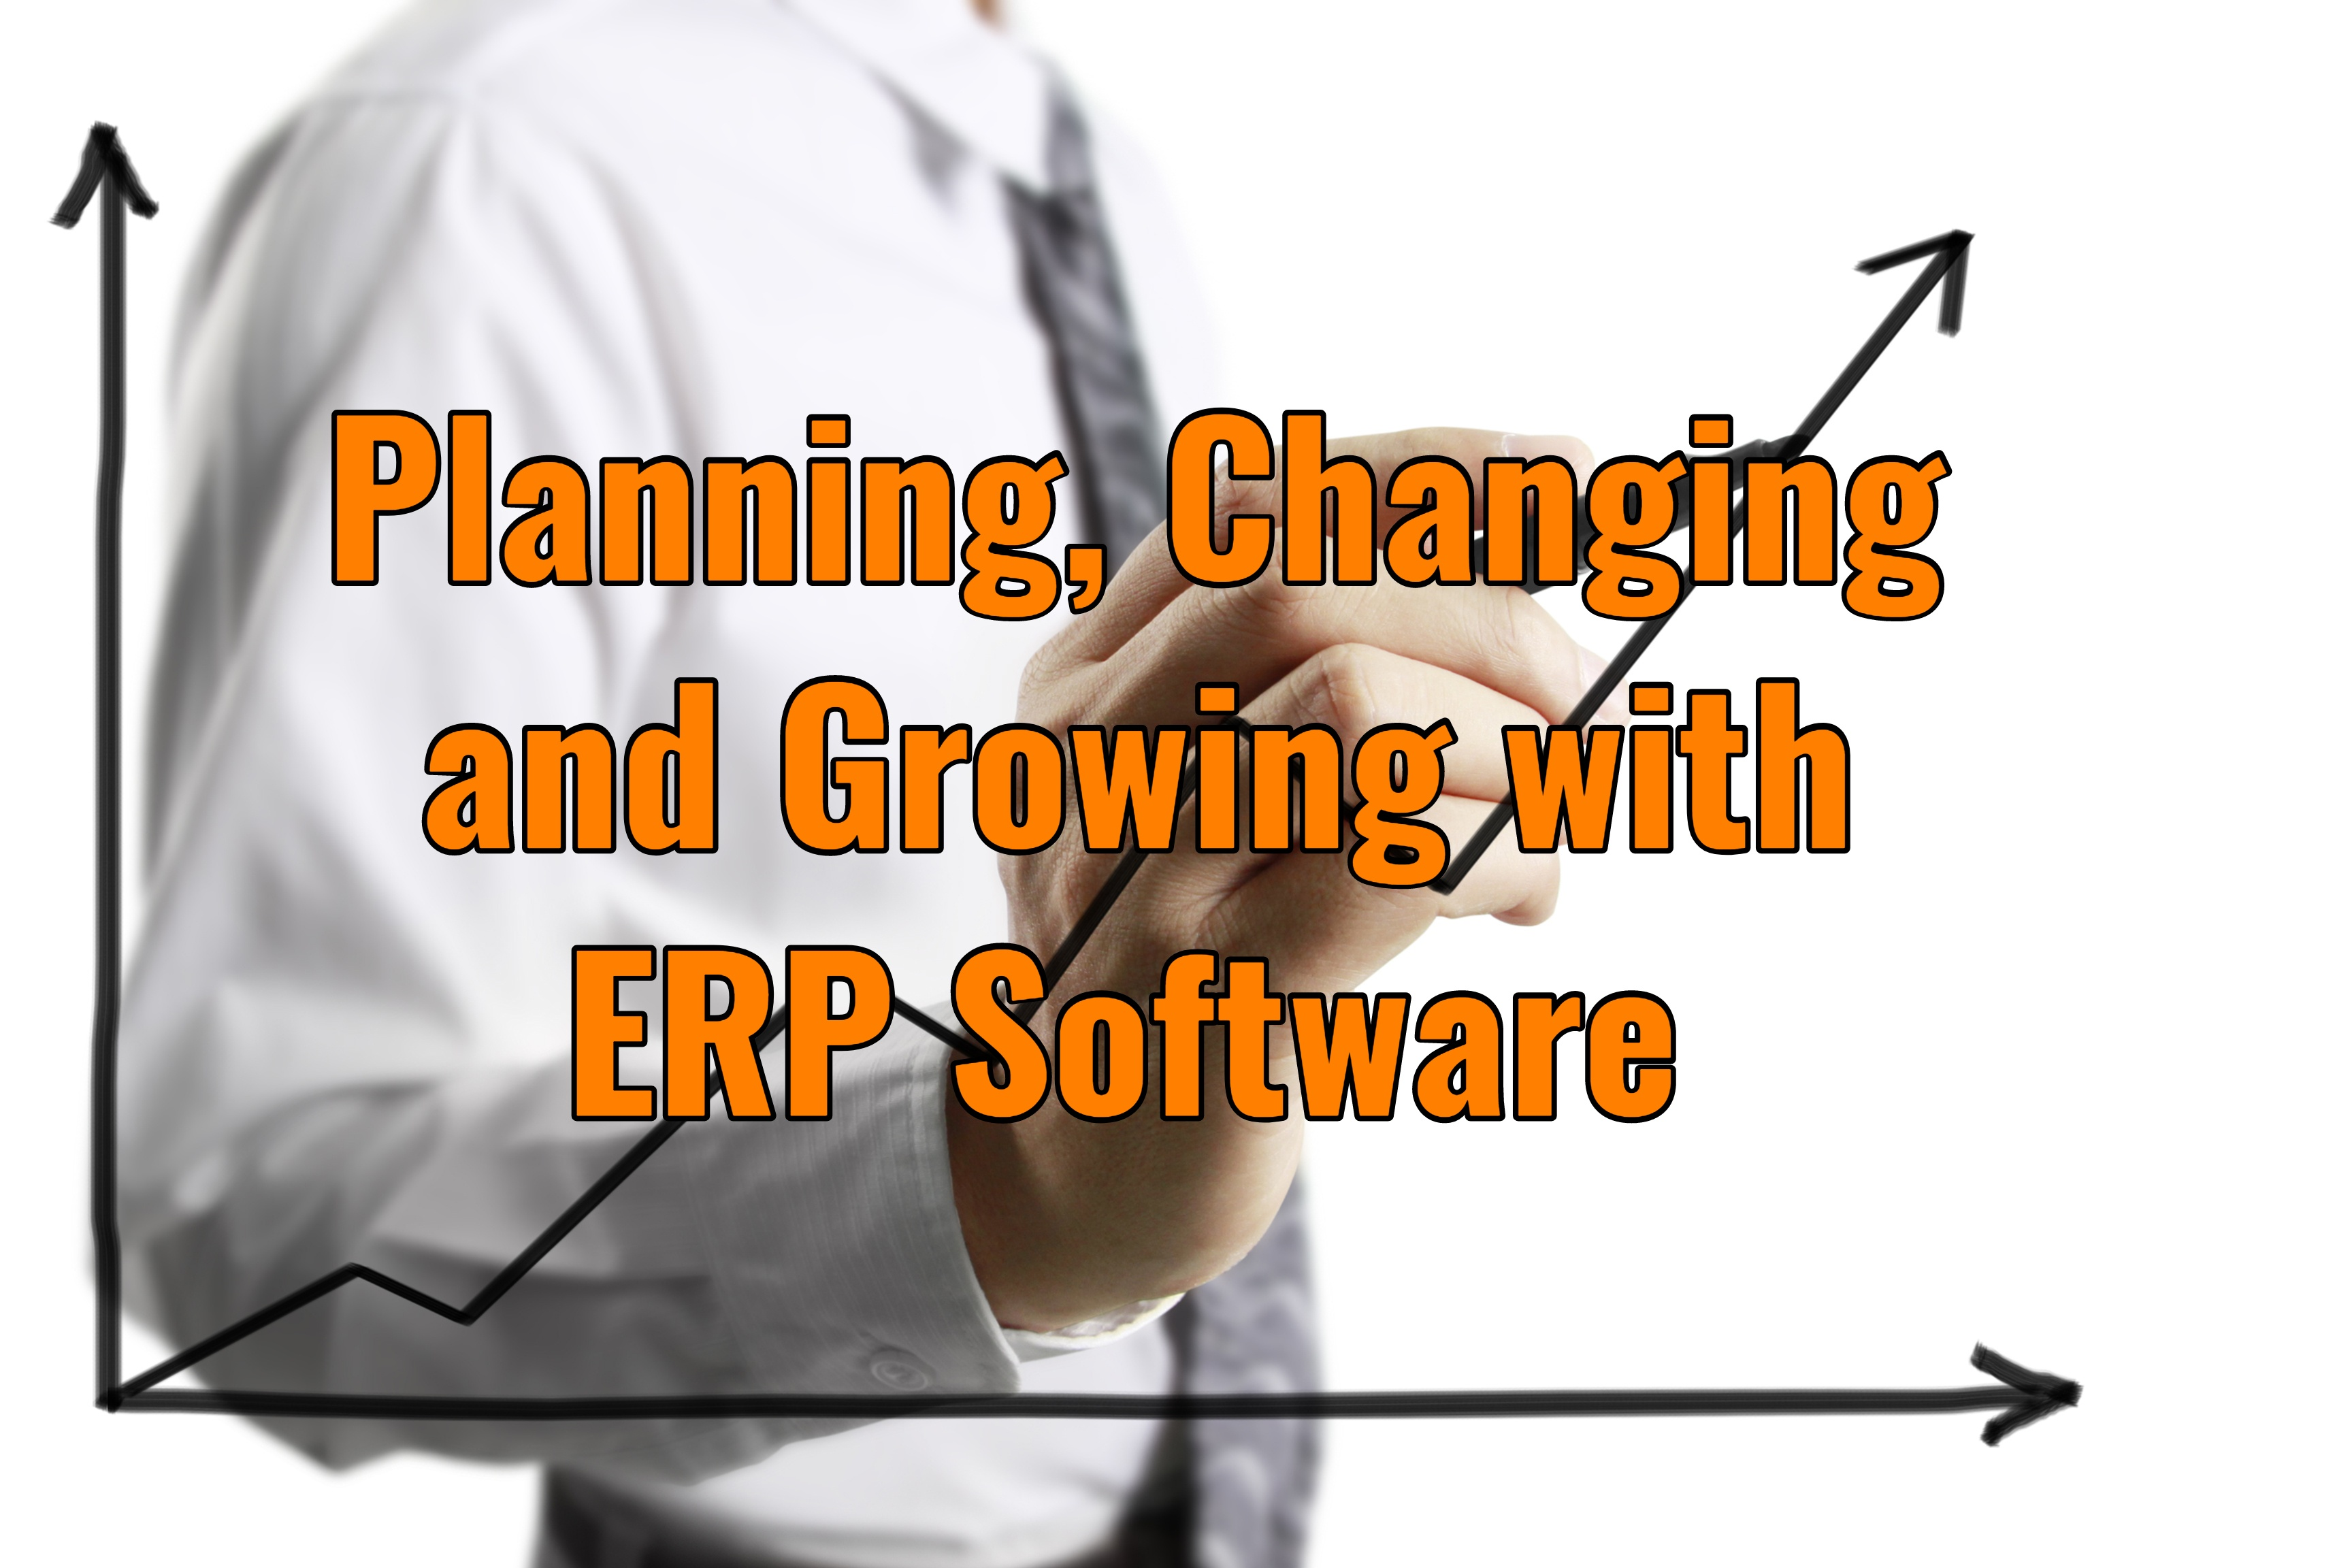 Planning, Changing and Growing with ERP Software